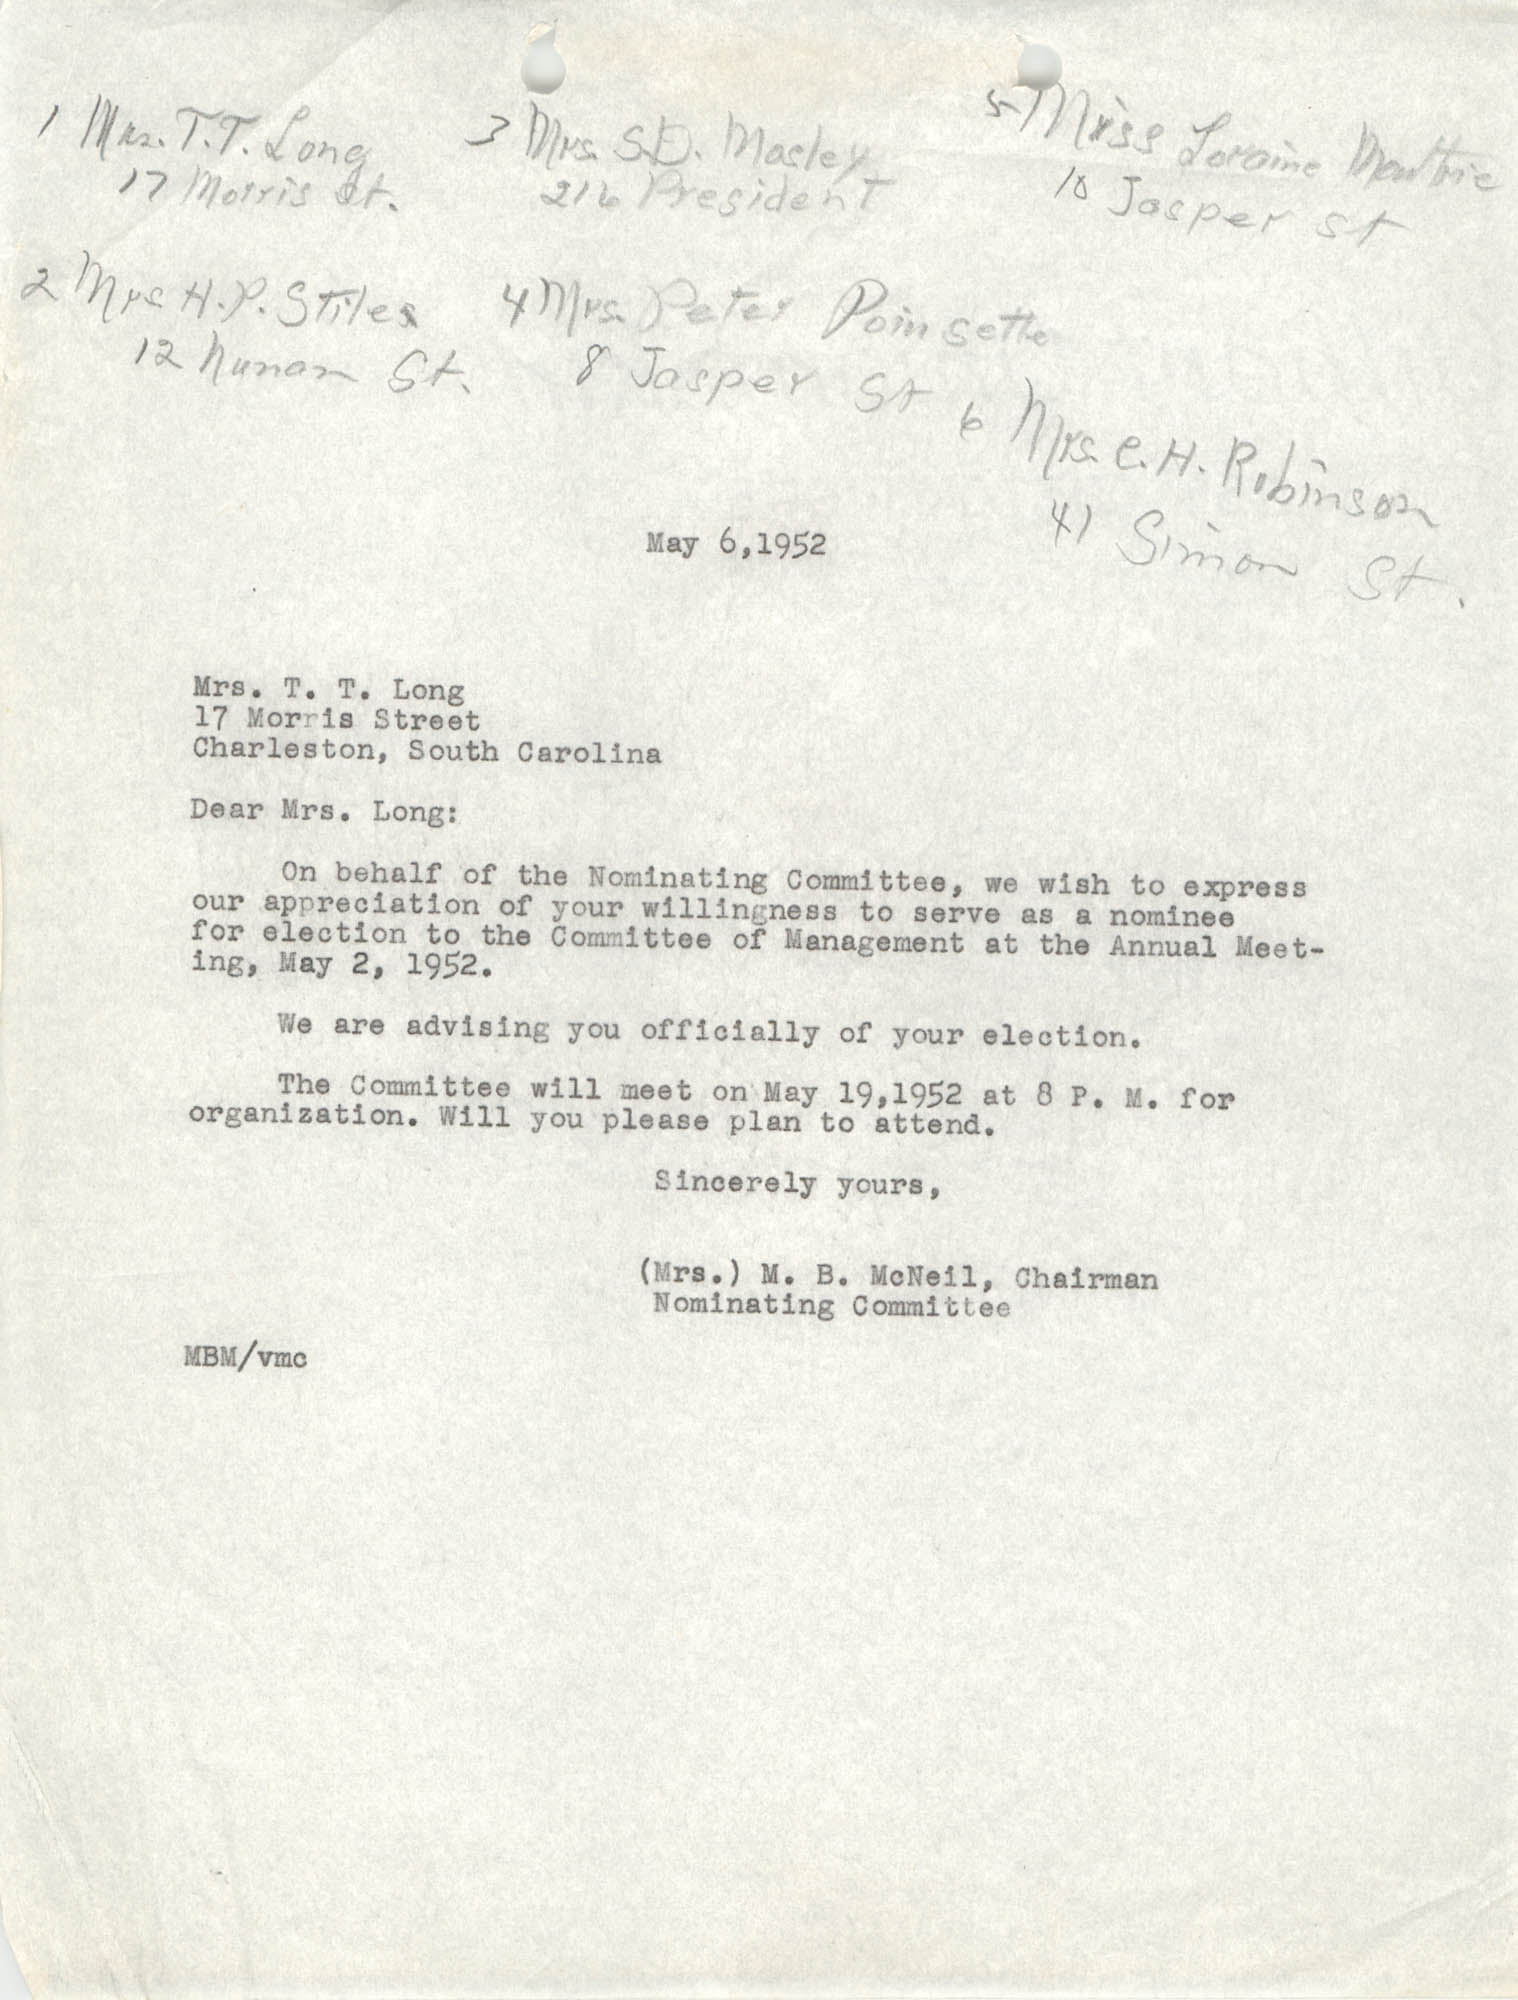 Letter from M. B. McNeil to T. T. Long, May 6, 1952